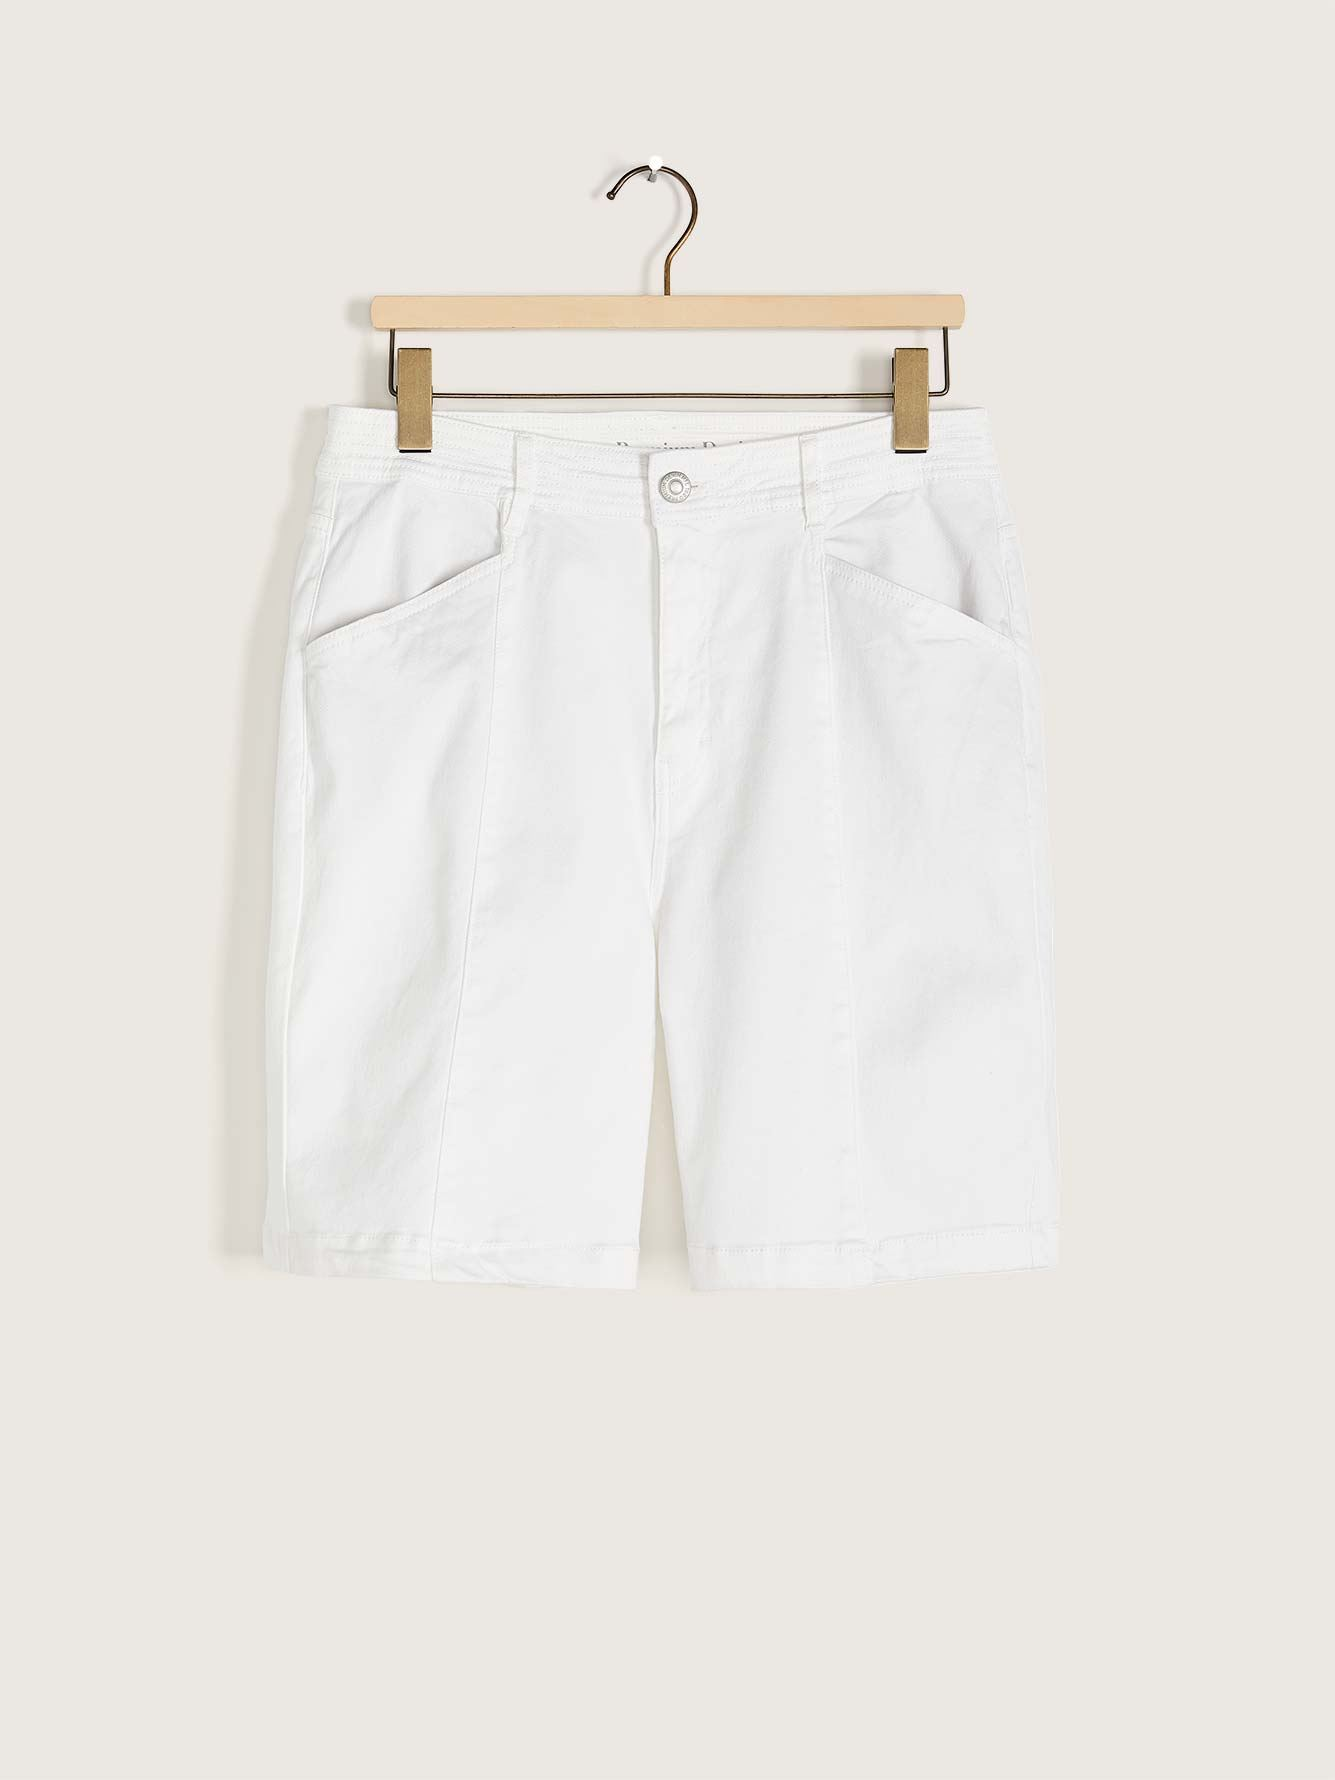 Buttoned White Denim Short - Addition Elle